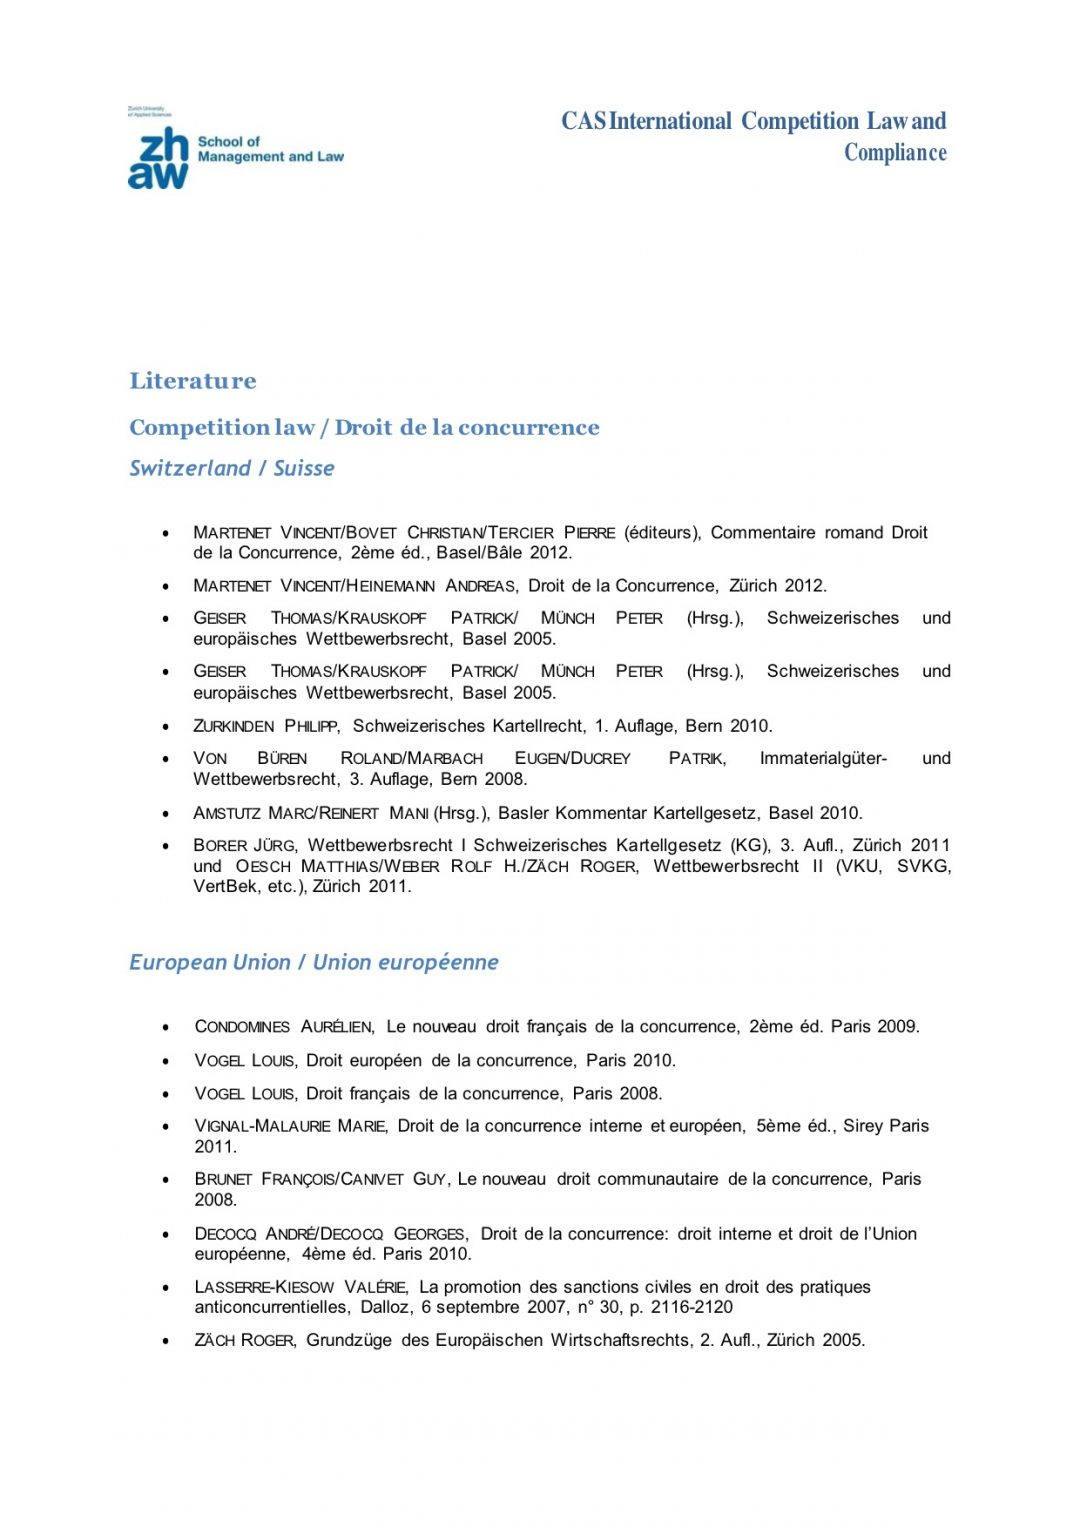 Contribution Literature – CAS International Competition Law and Compliance Course, 2-13 July 2018 Geneva Switzerland